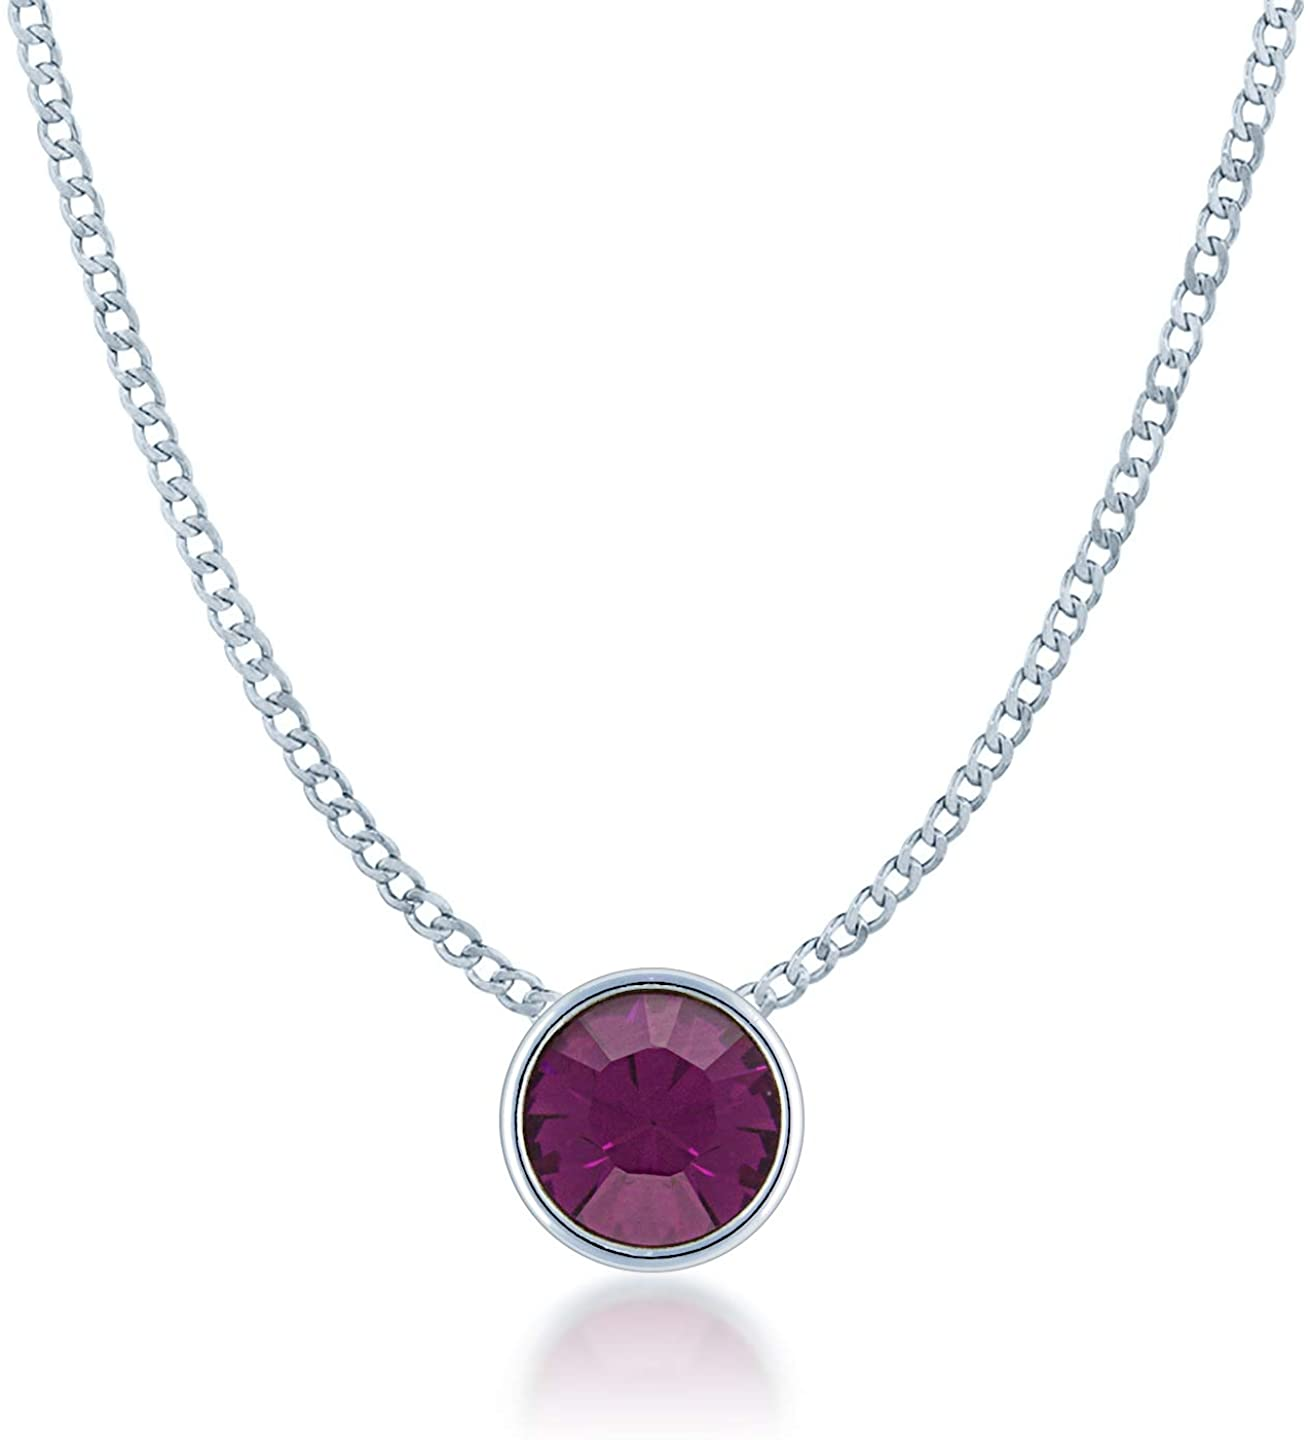 Ed Heart Womens Small Pendant Necklace with Round Crystals from Swarovski